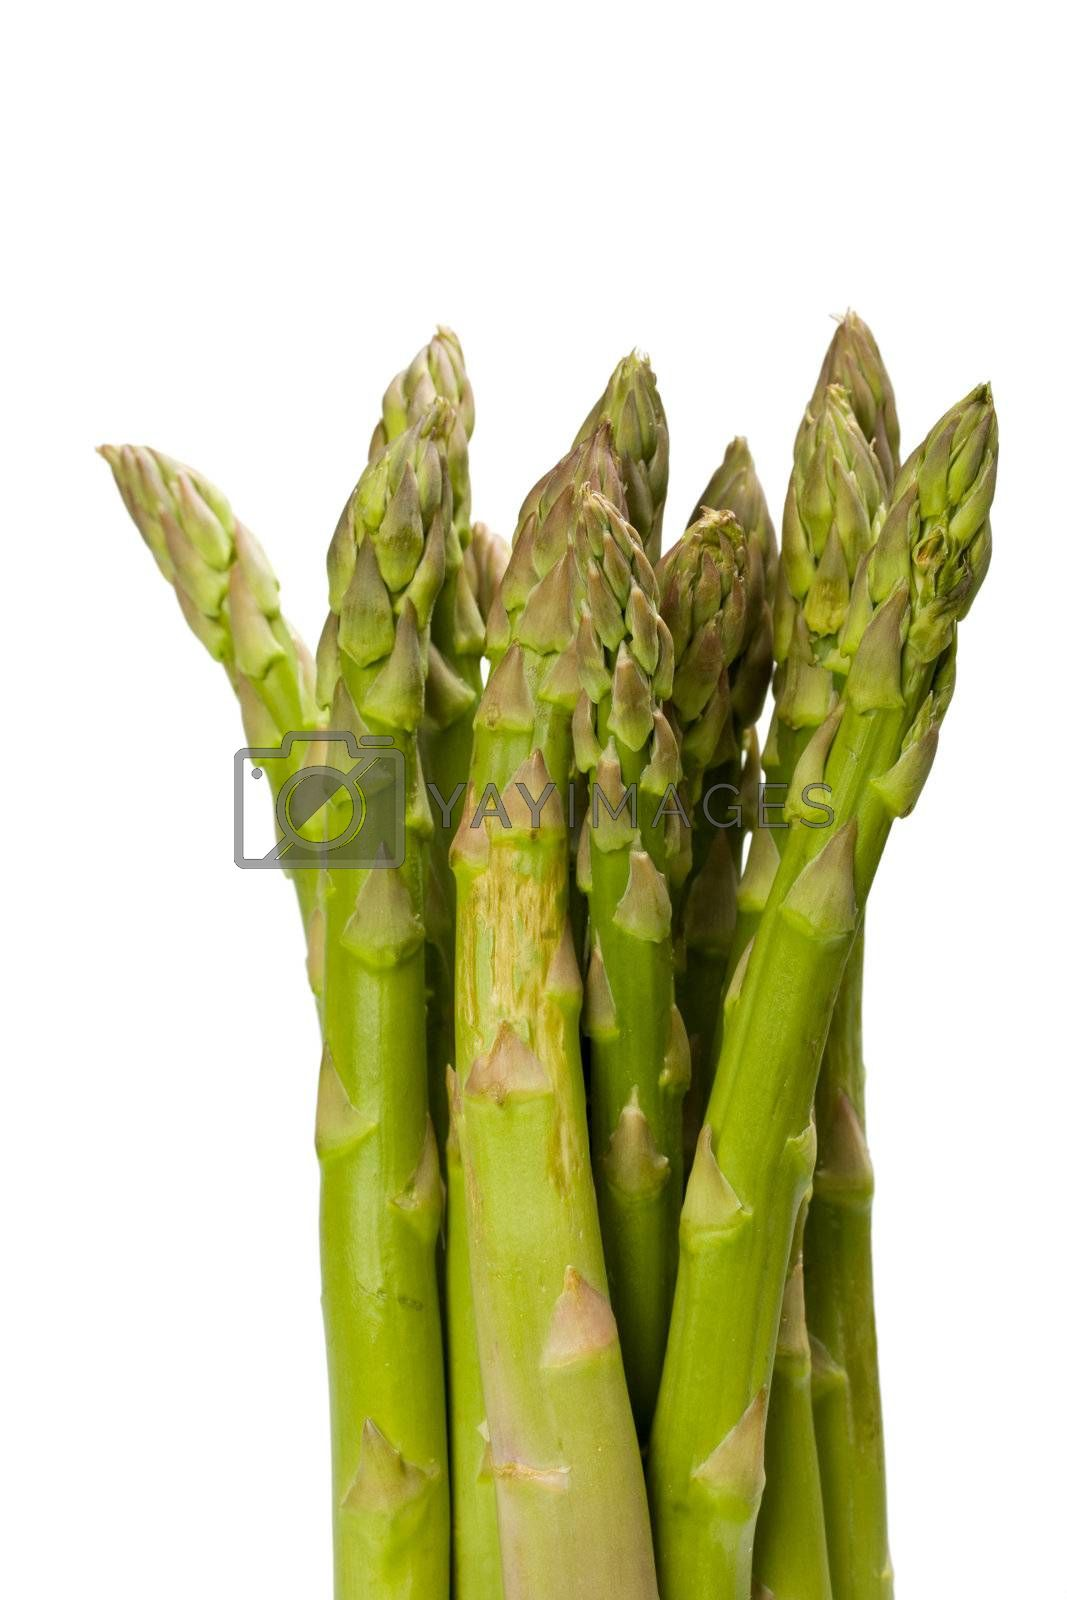 detail of fresh green asparagus isolated on white background